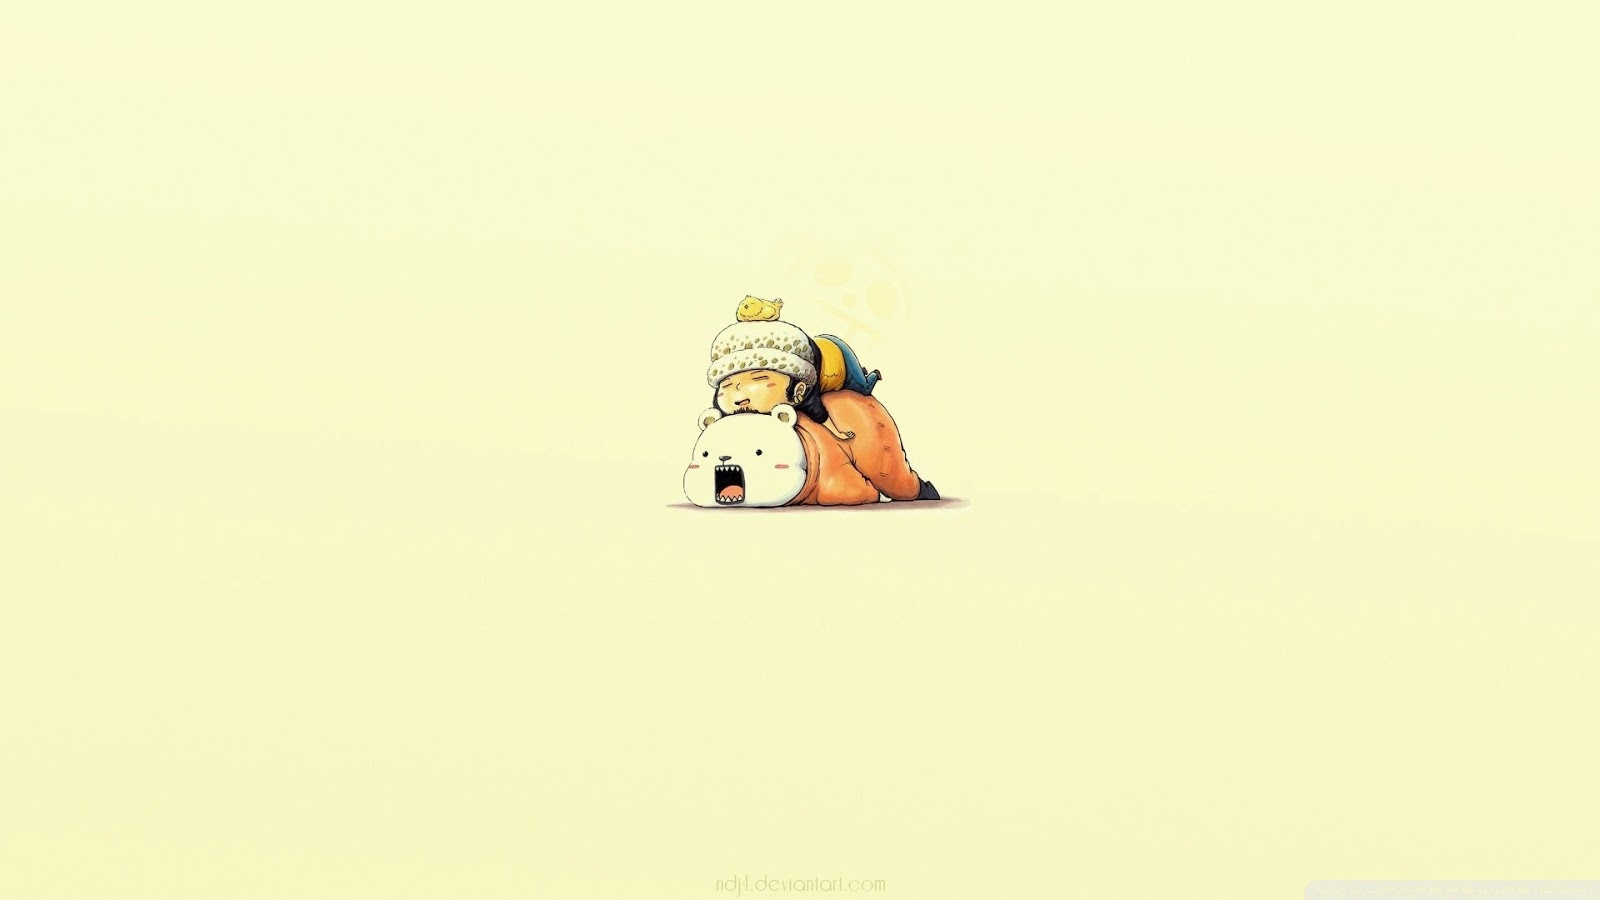 Bepo Sleeping Anime Chibi One Piece HD Wallpaper Desktop Background 1600x900